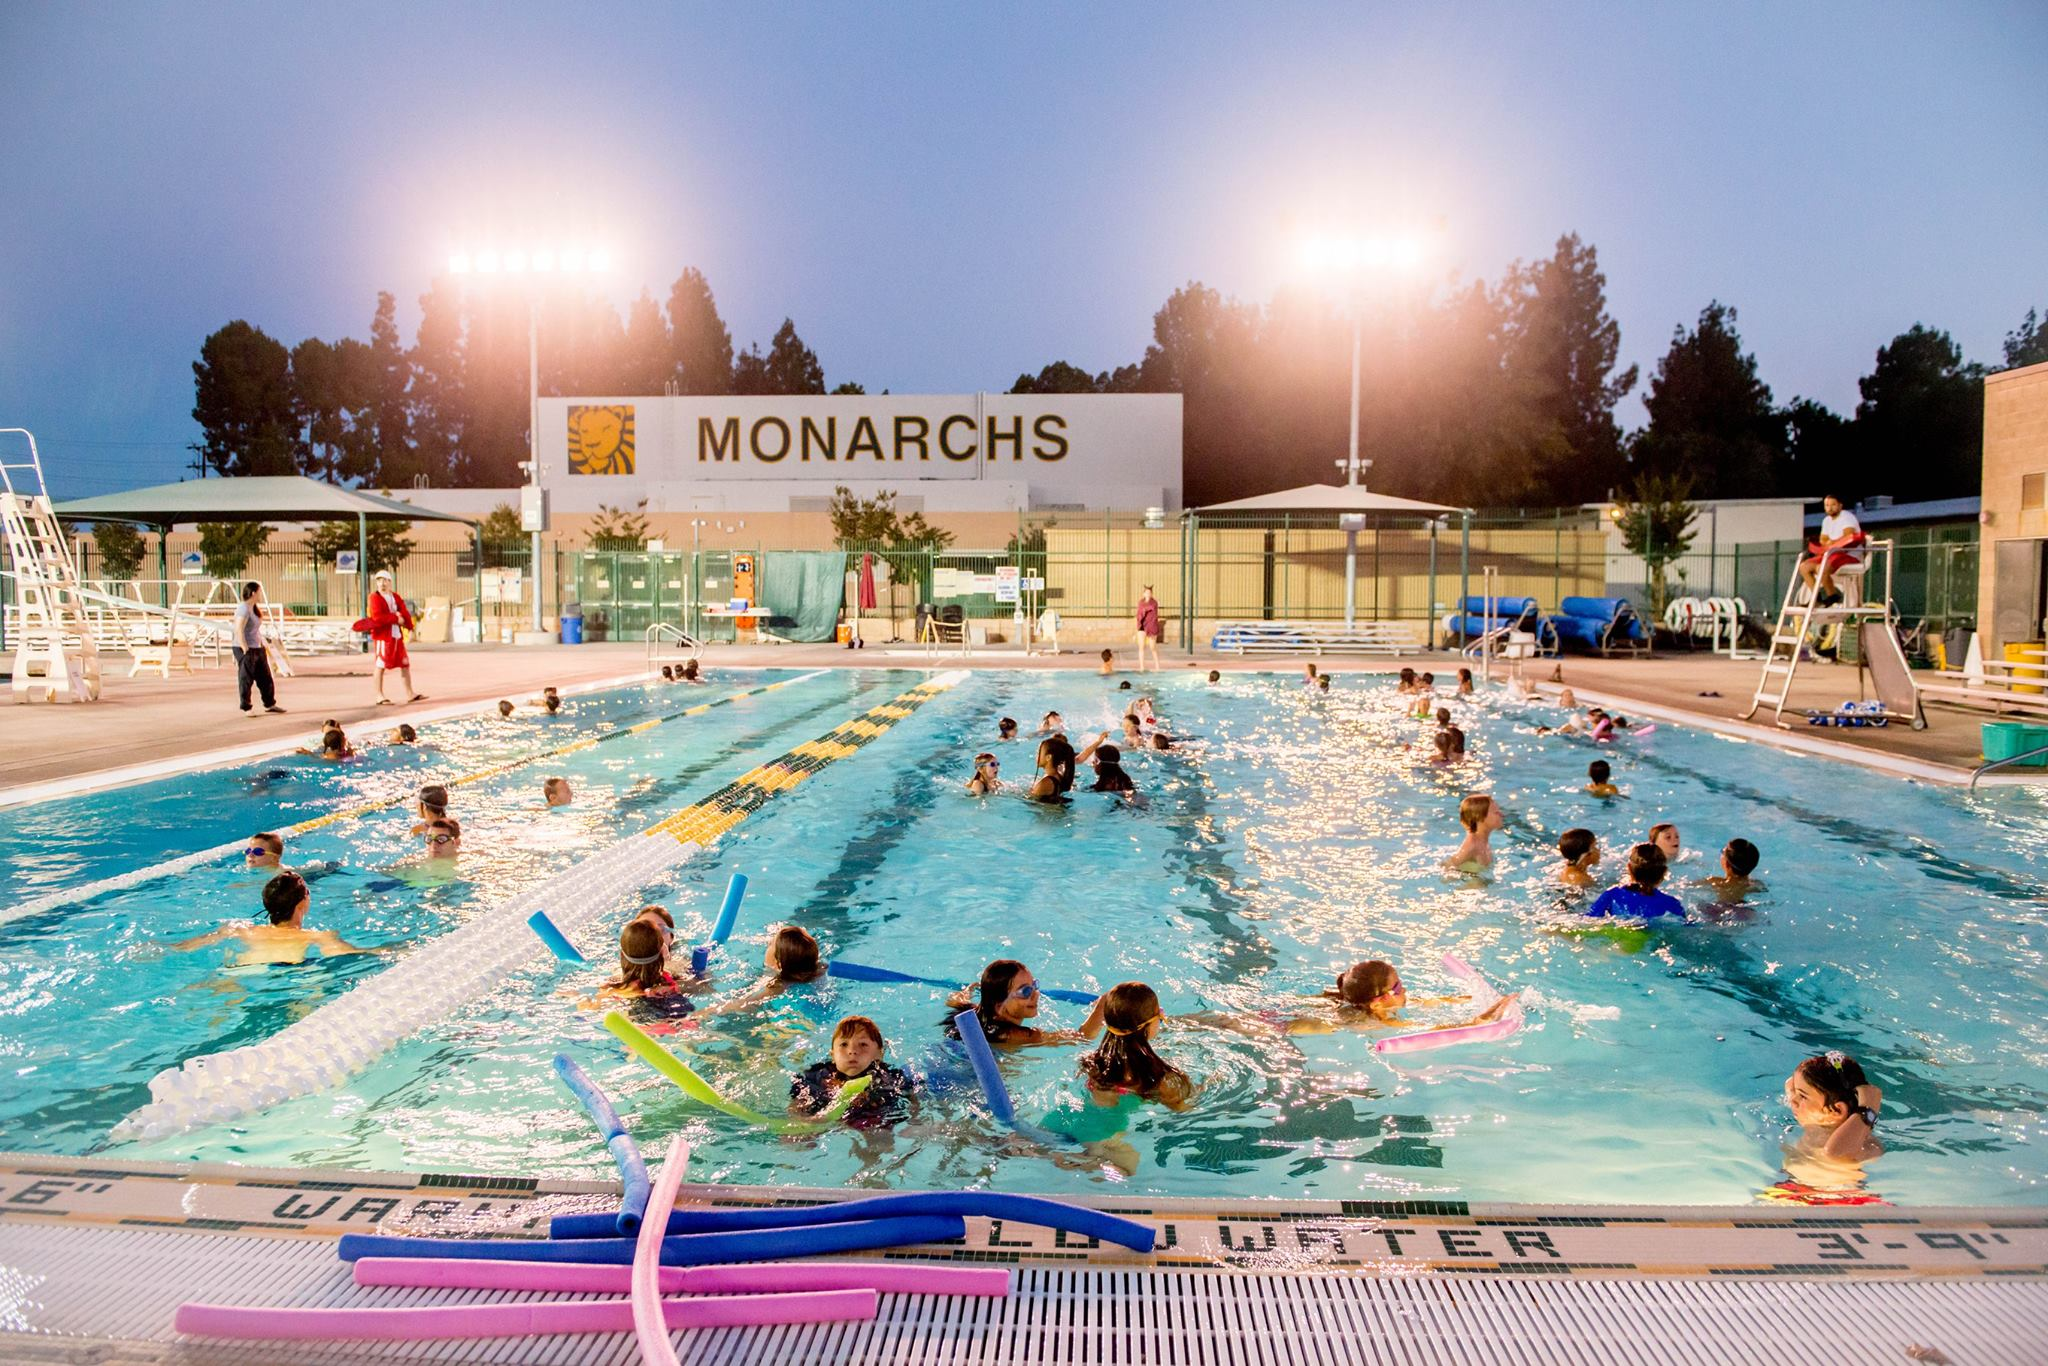 https://monarchcamps.com/wp-content/uploads/2018/01/monarch-camps-sleepover-sleepaway-camp-los-angeles-night-swimming-at-los-angeles-valley-college-swimming-pool.jpg